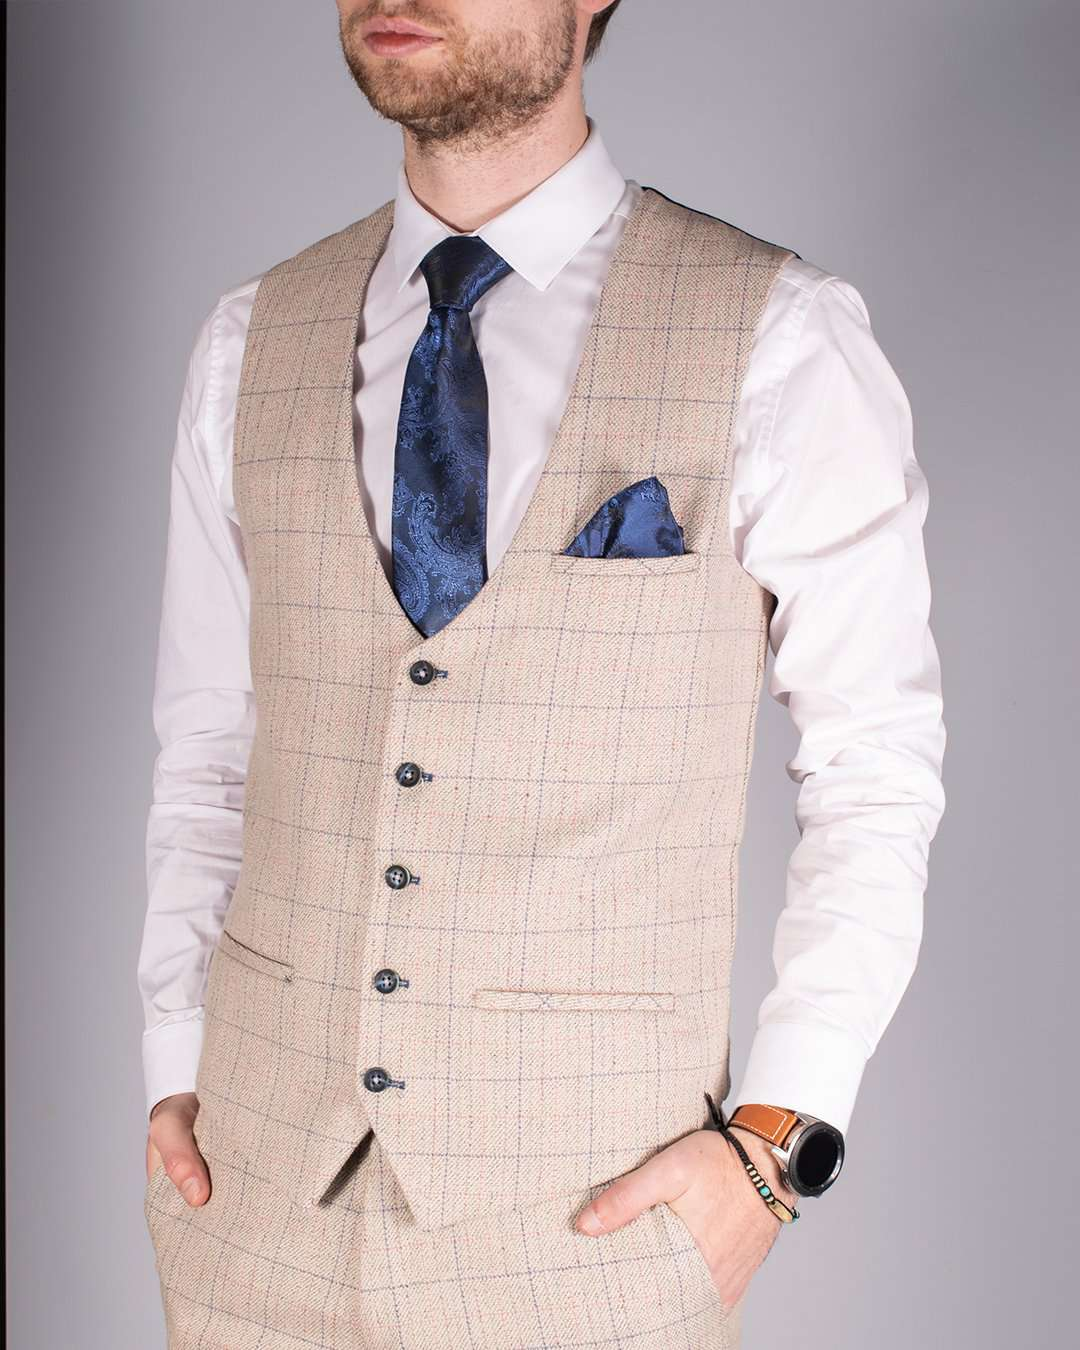 MARC DARCY Harding Tweed Single Breasted Waistcoat - Revolver Menswear Bawtry